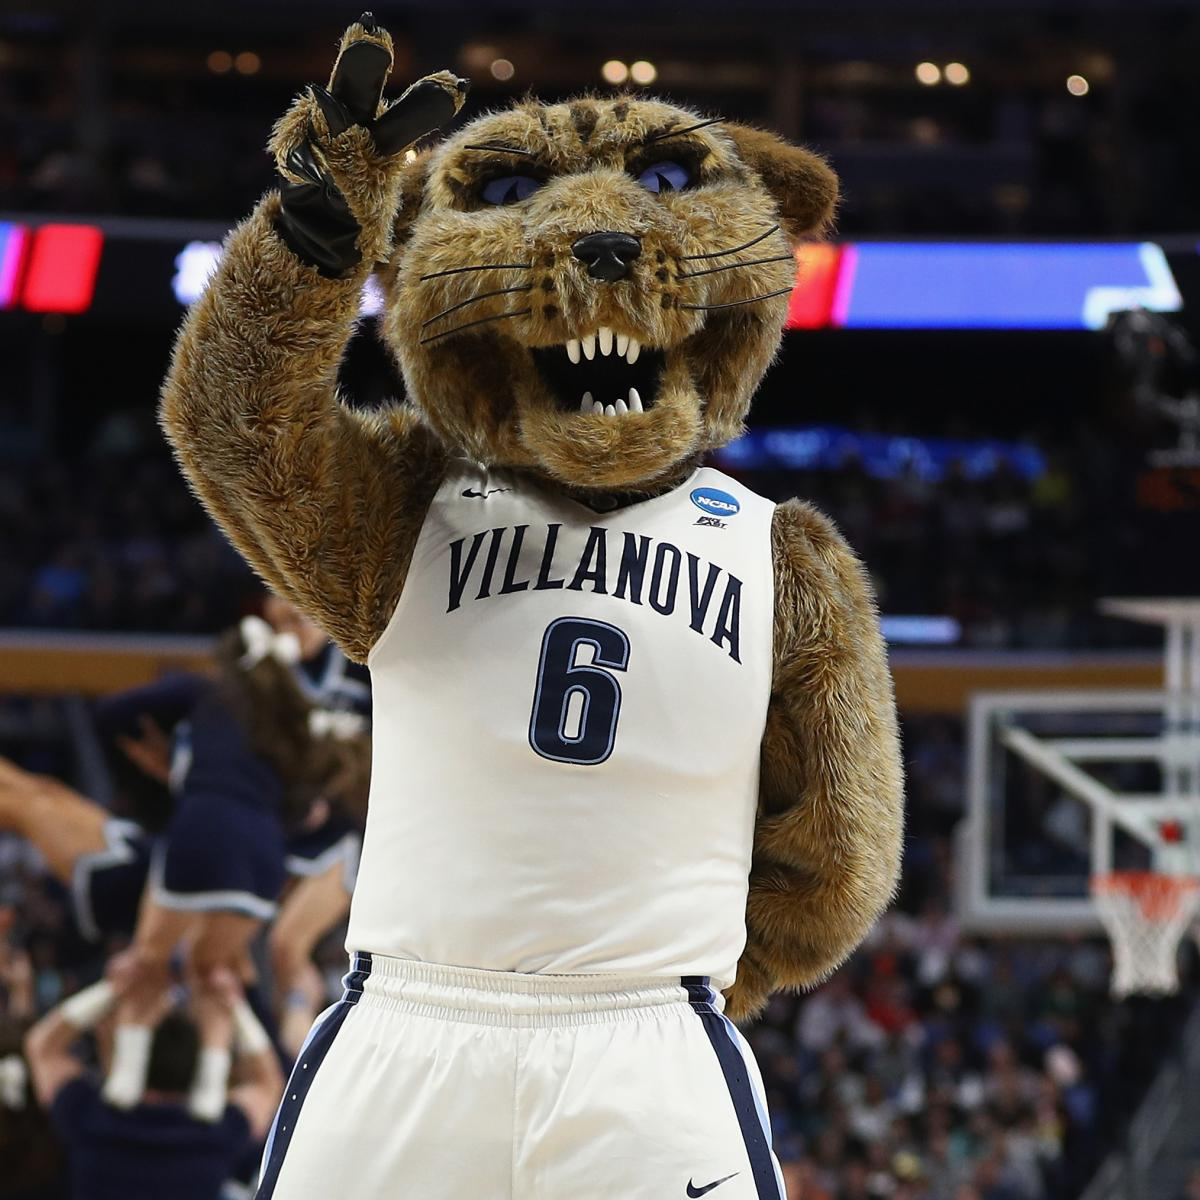 Wisconsin Badgers Vs Villanova Wildcats Odds March Madness Betting Pick Bleacher Report Latest News Videos And Highlights